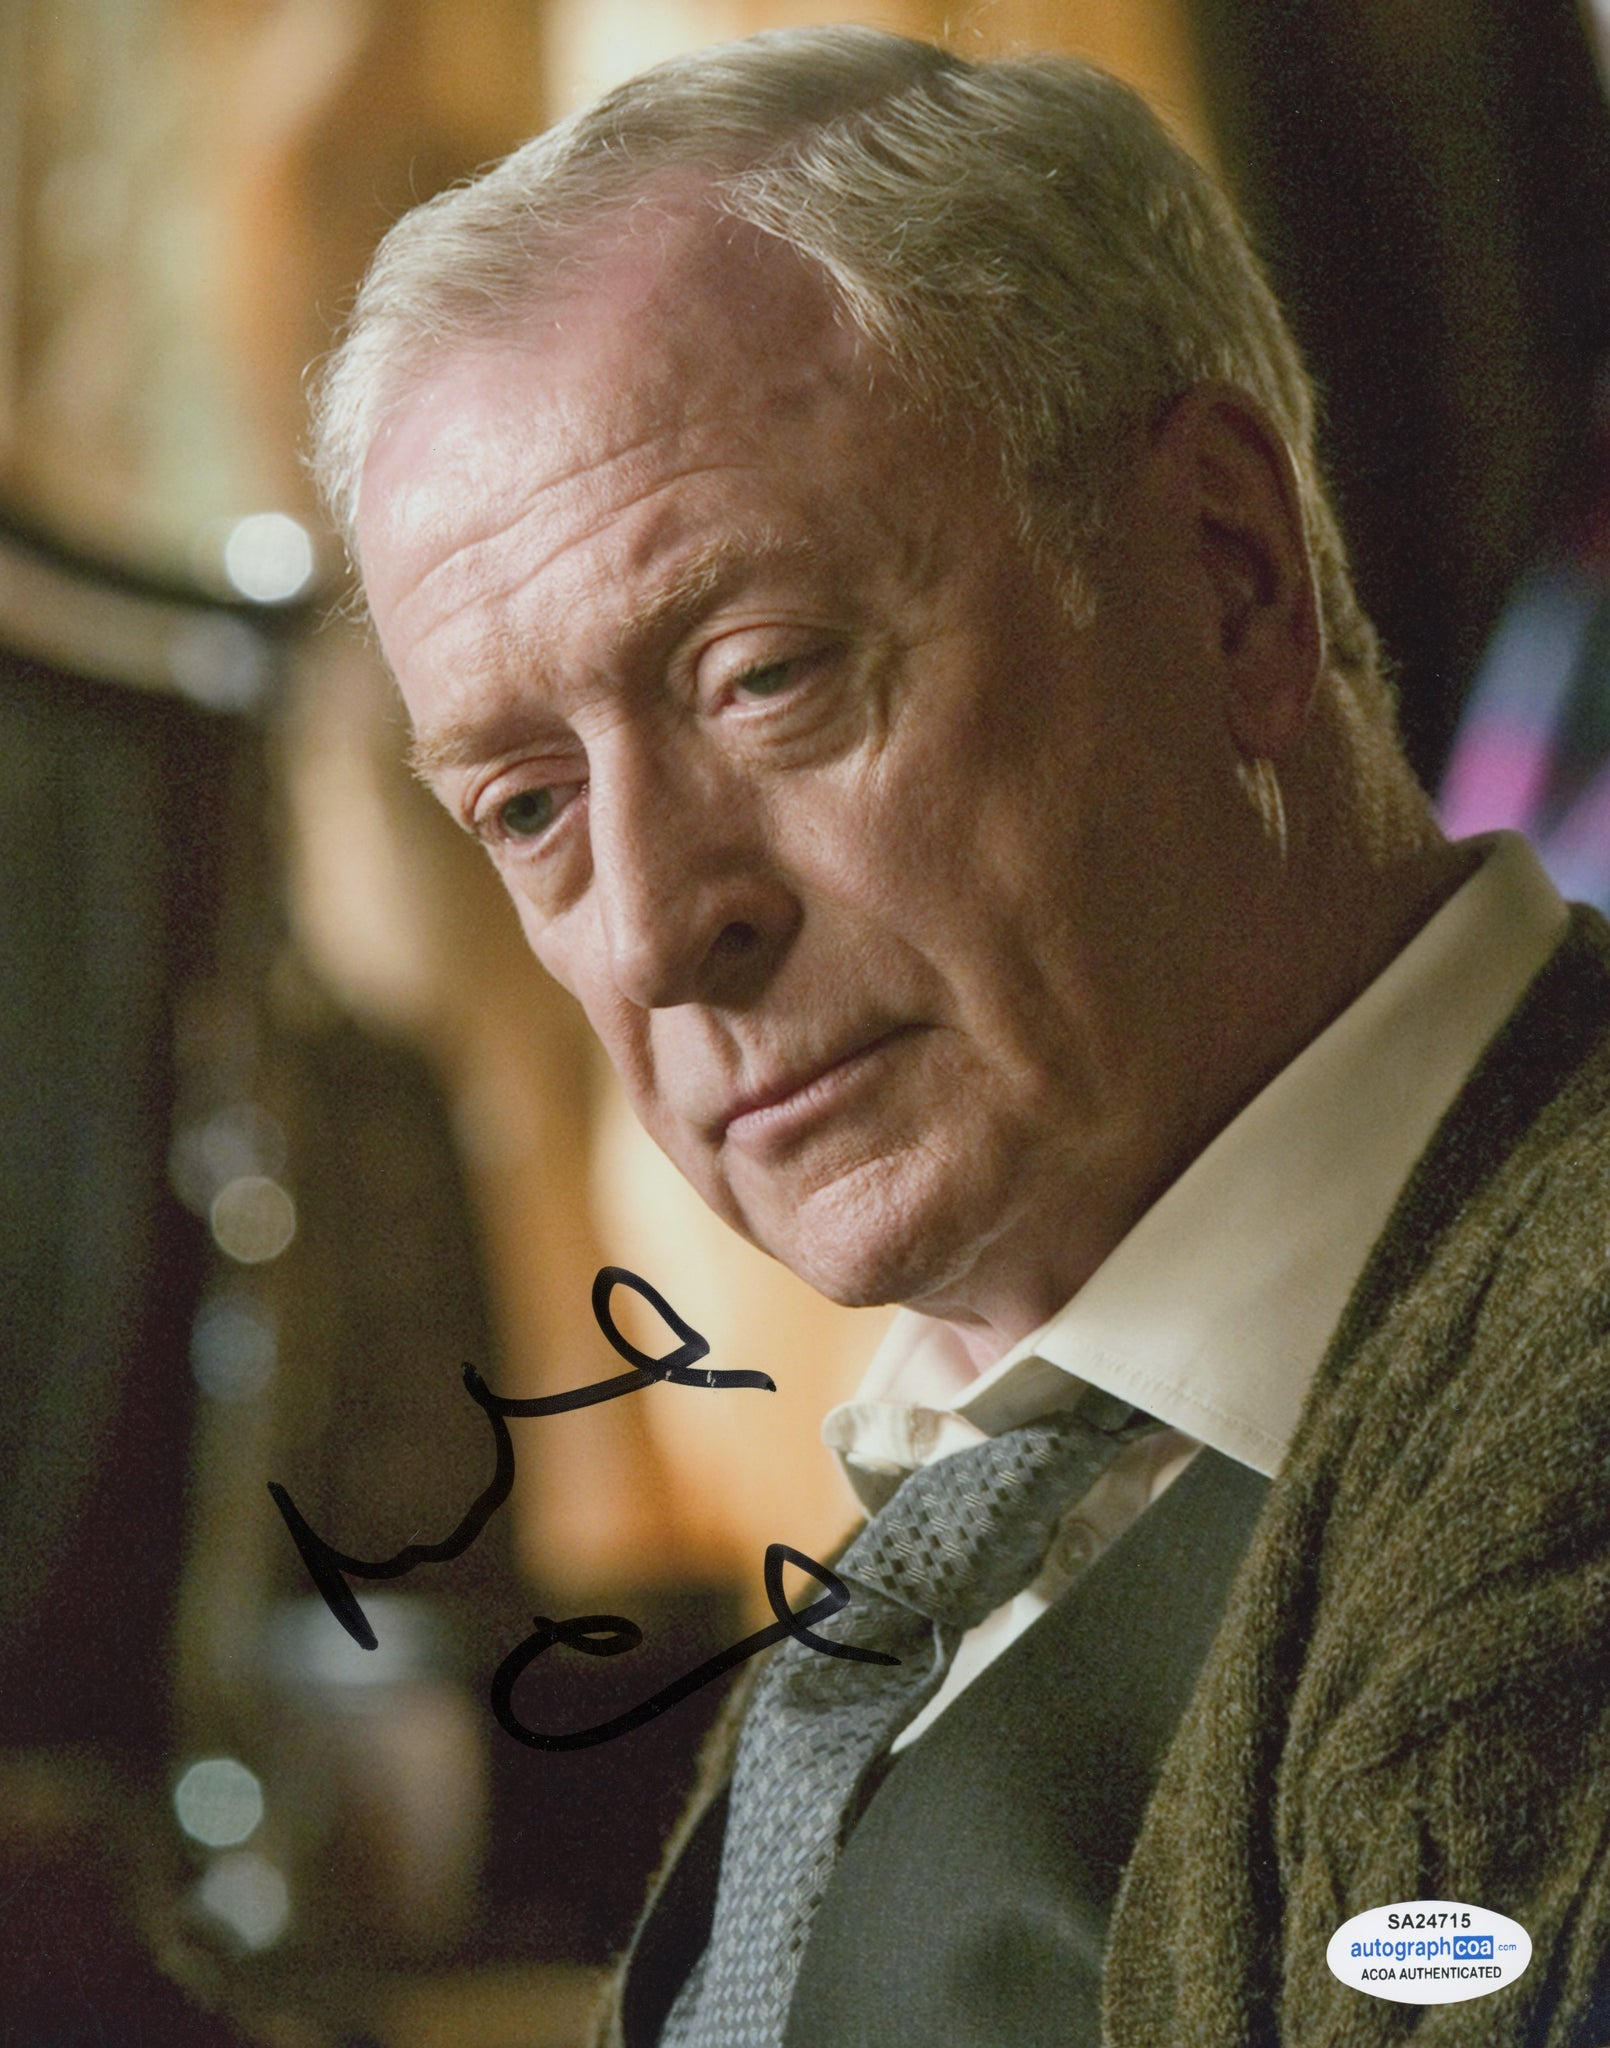 Michael Caine Dark Knight Signed Autograph 8x10 Photo ACOA #7 - Outlaw Hobbies Authentic Autographs